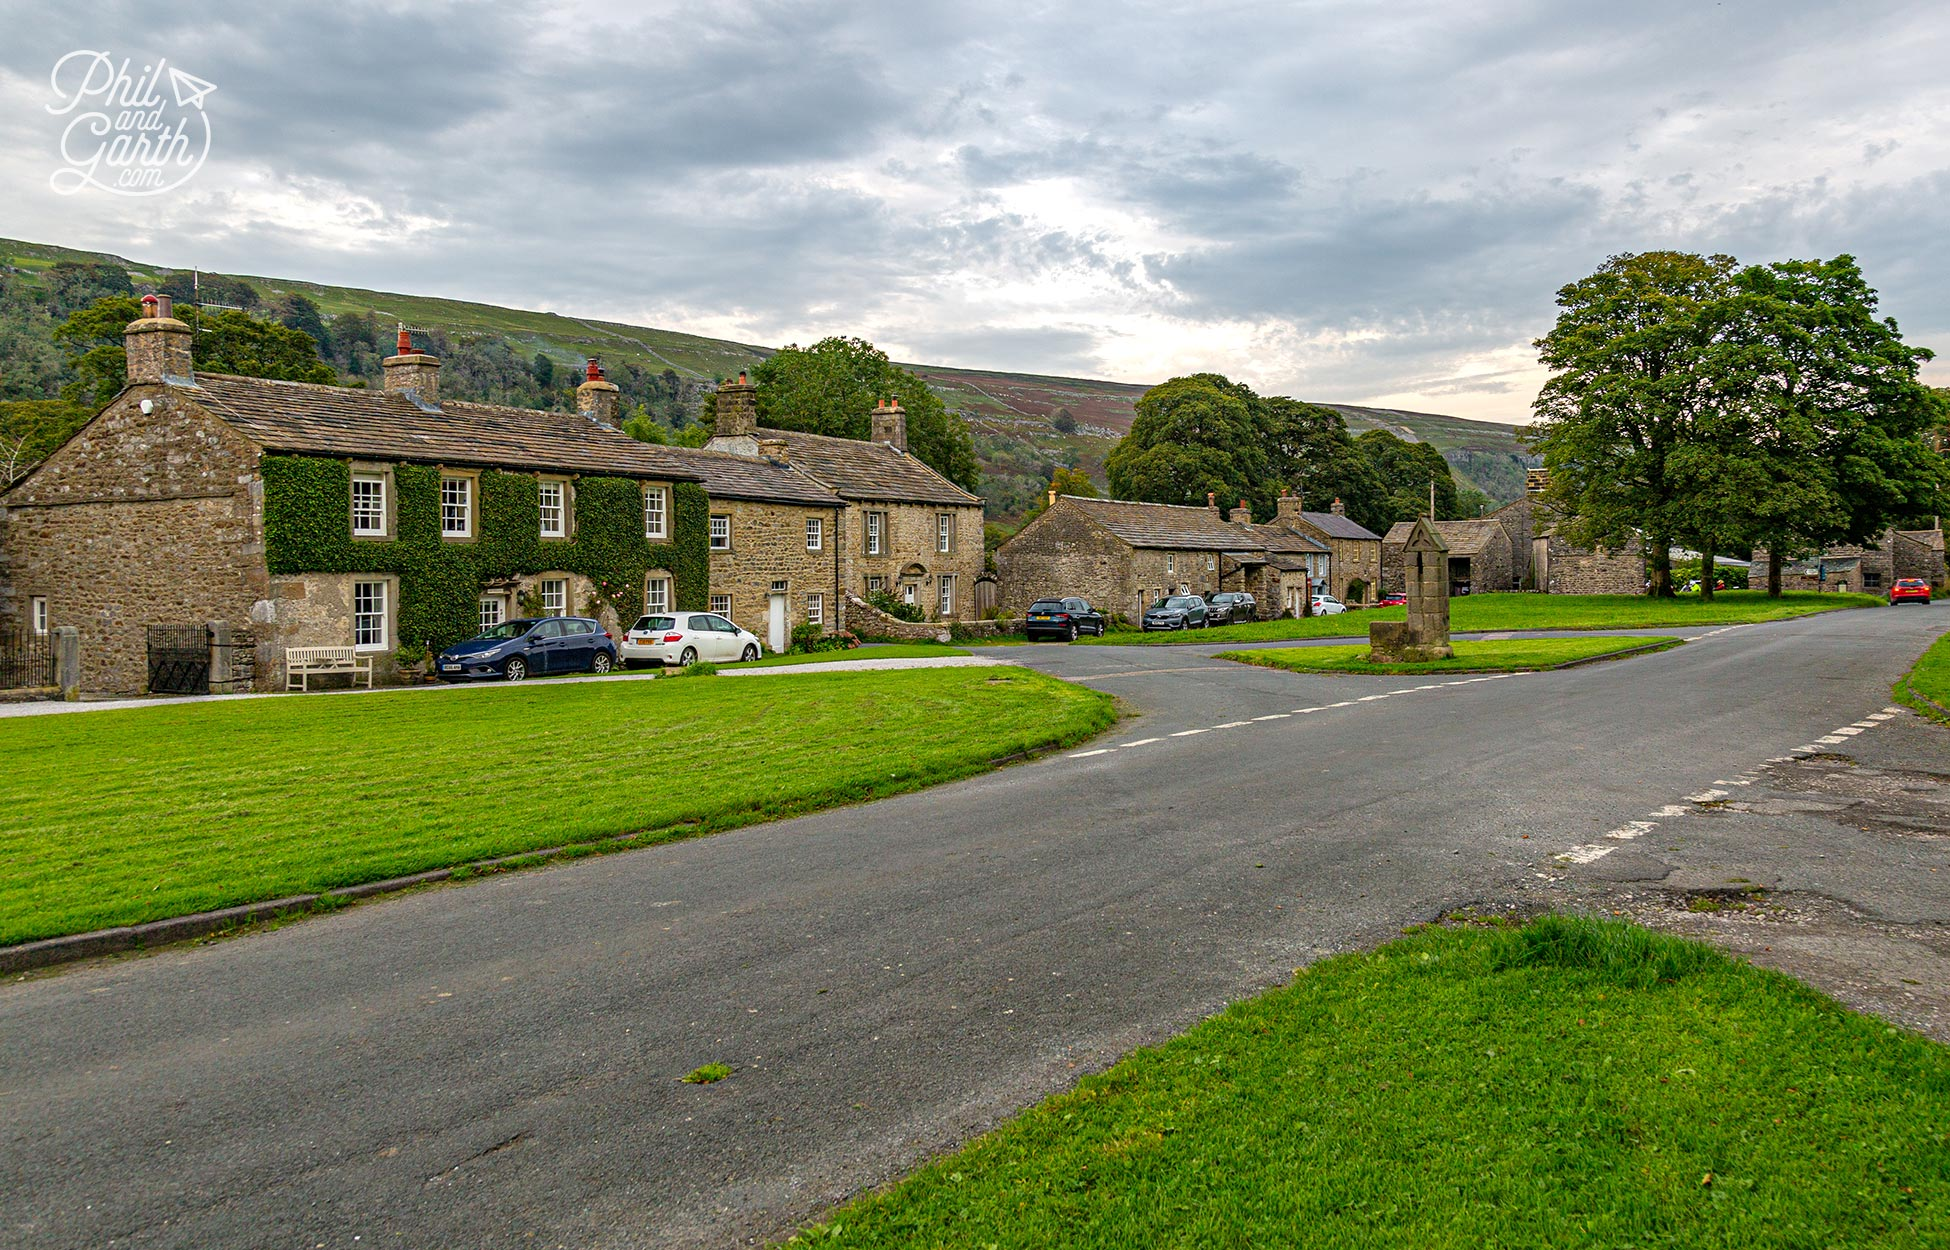 Arncliffe - one of the nicest Yorkshire Dales villages